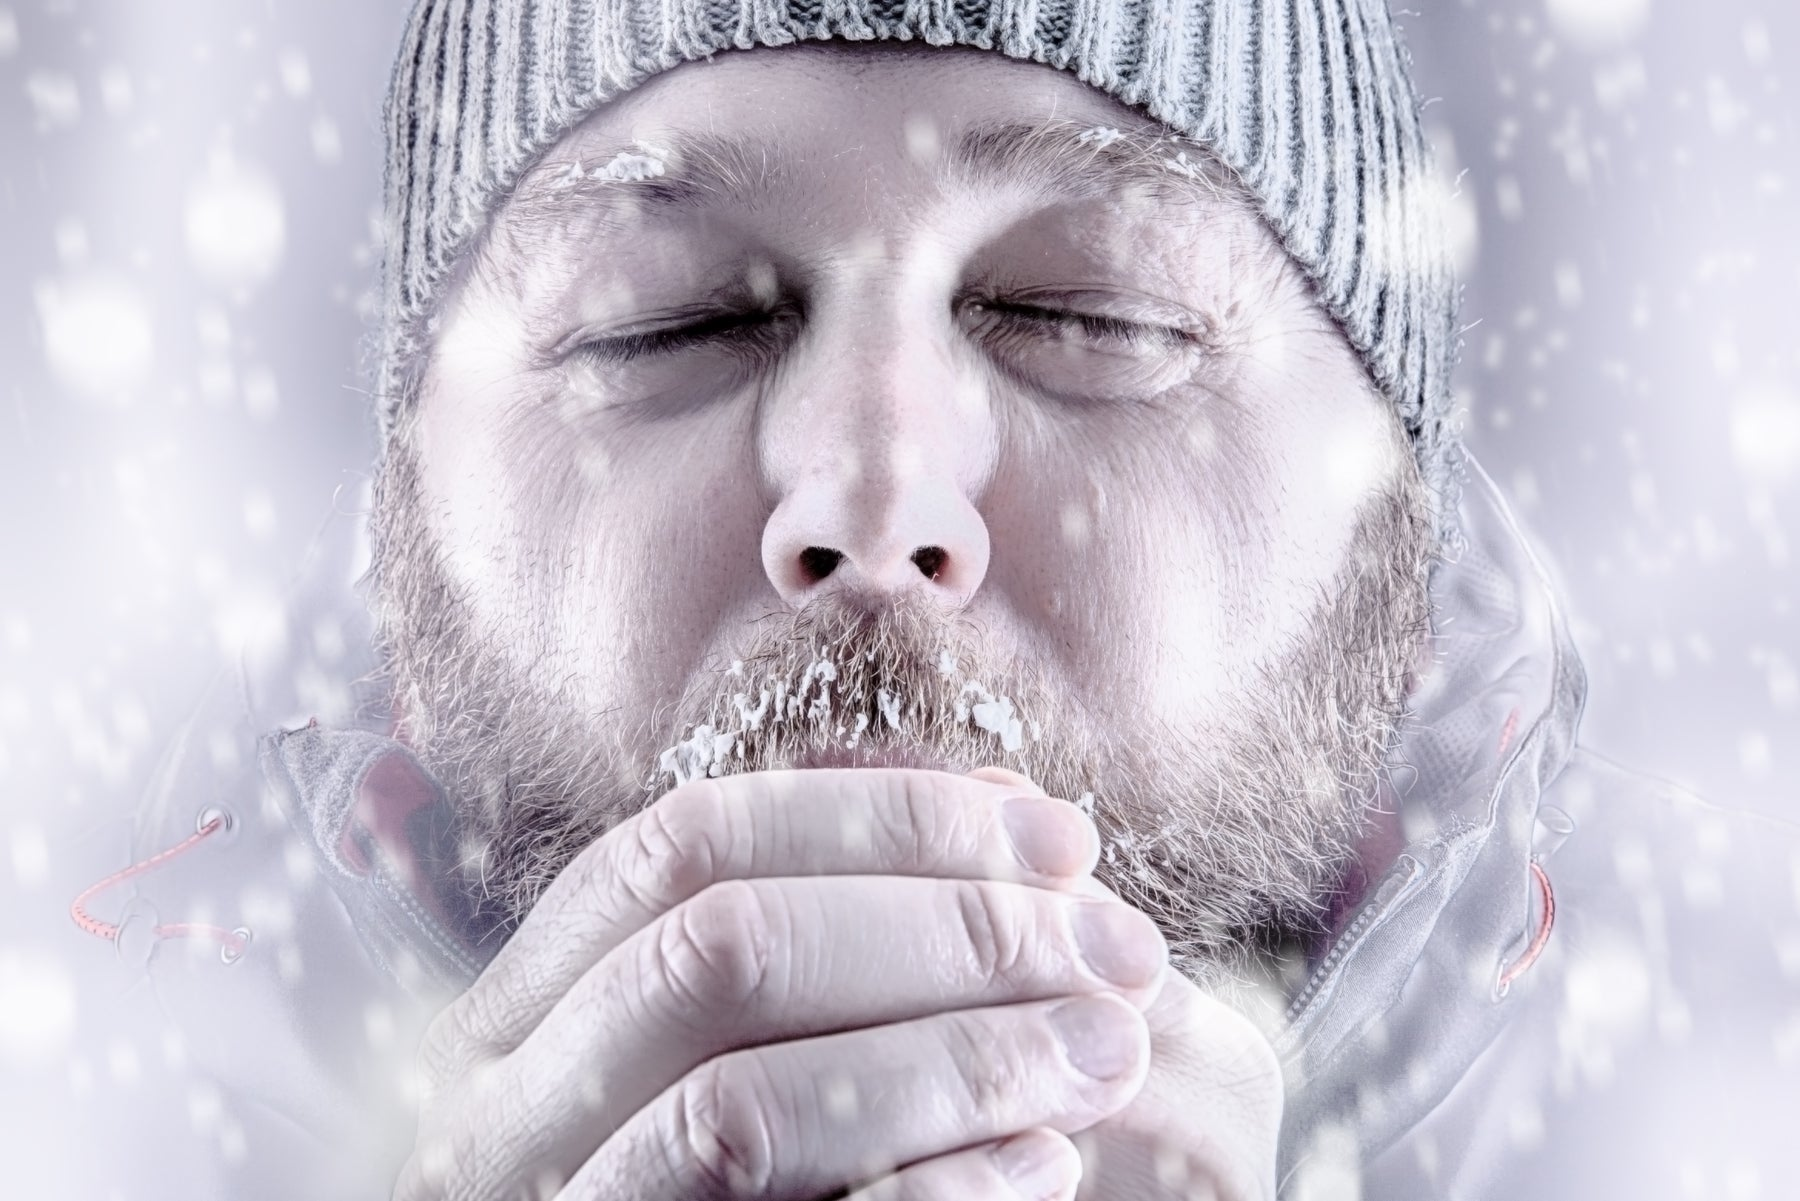 Extreme Cold Conditions: Hypothermia and Frostbite